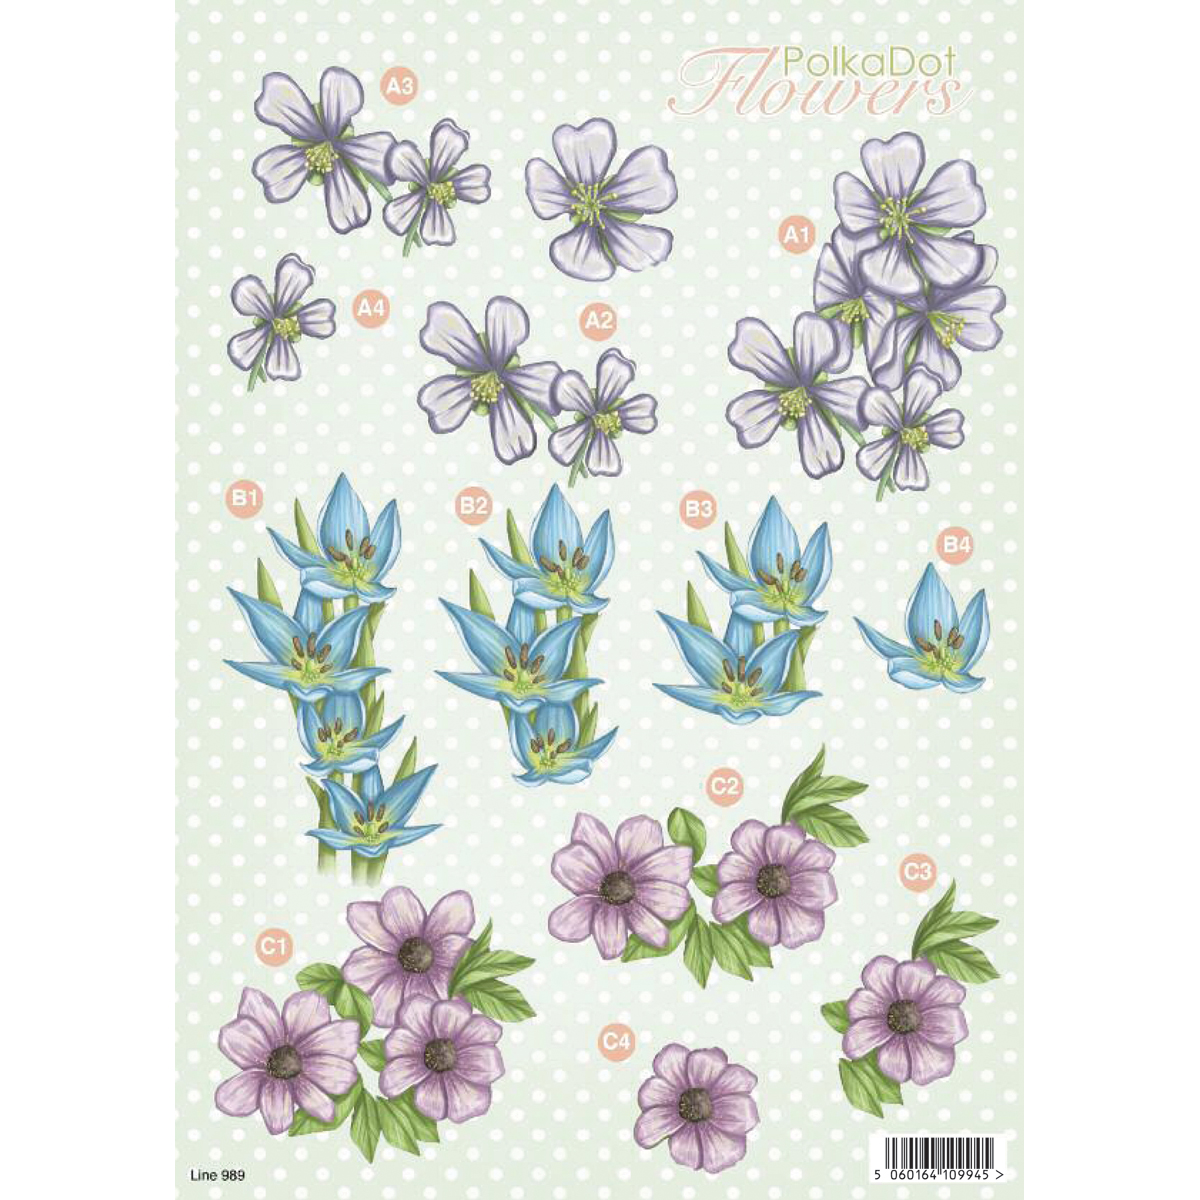 "3D Die-Cut Decoupage Sheet 8.3""X11.69""-Polka Dot Flowers: Violet & Blue"